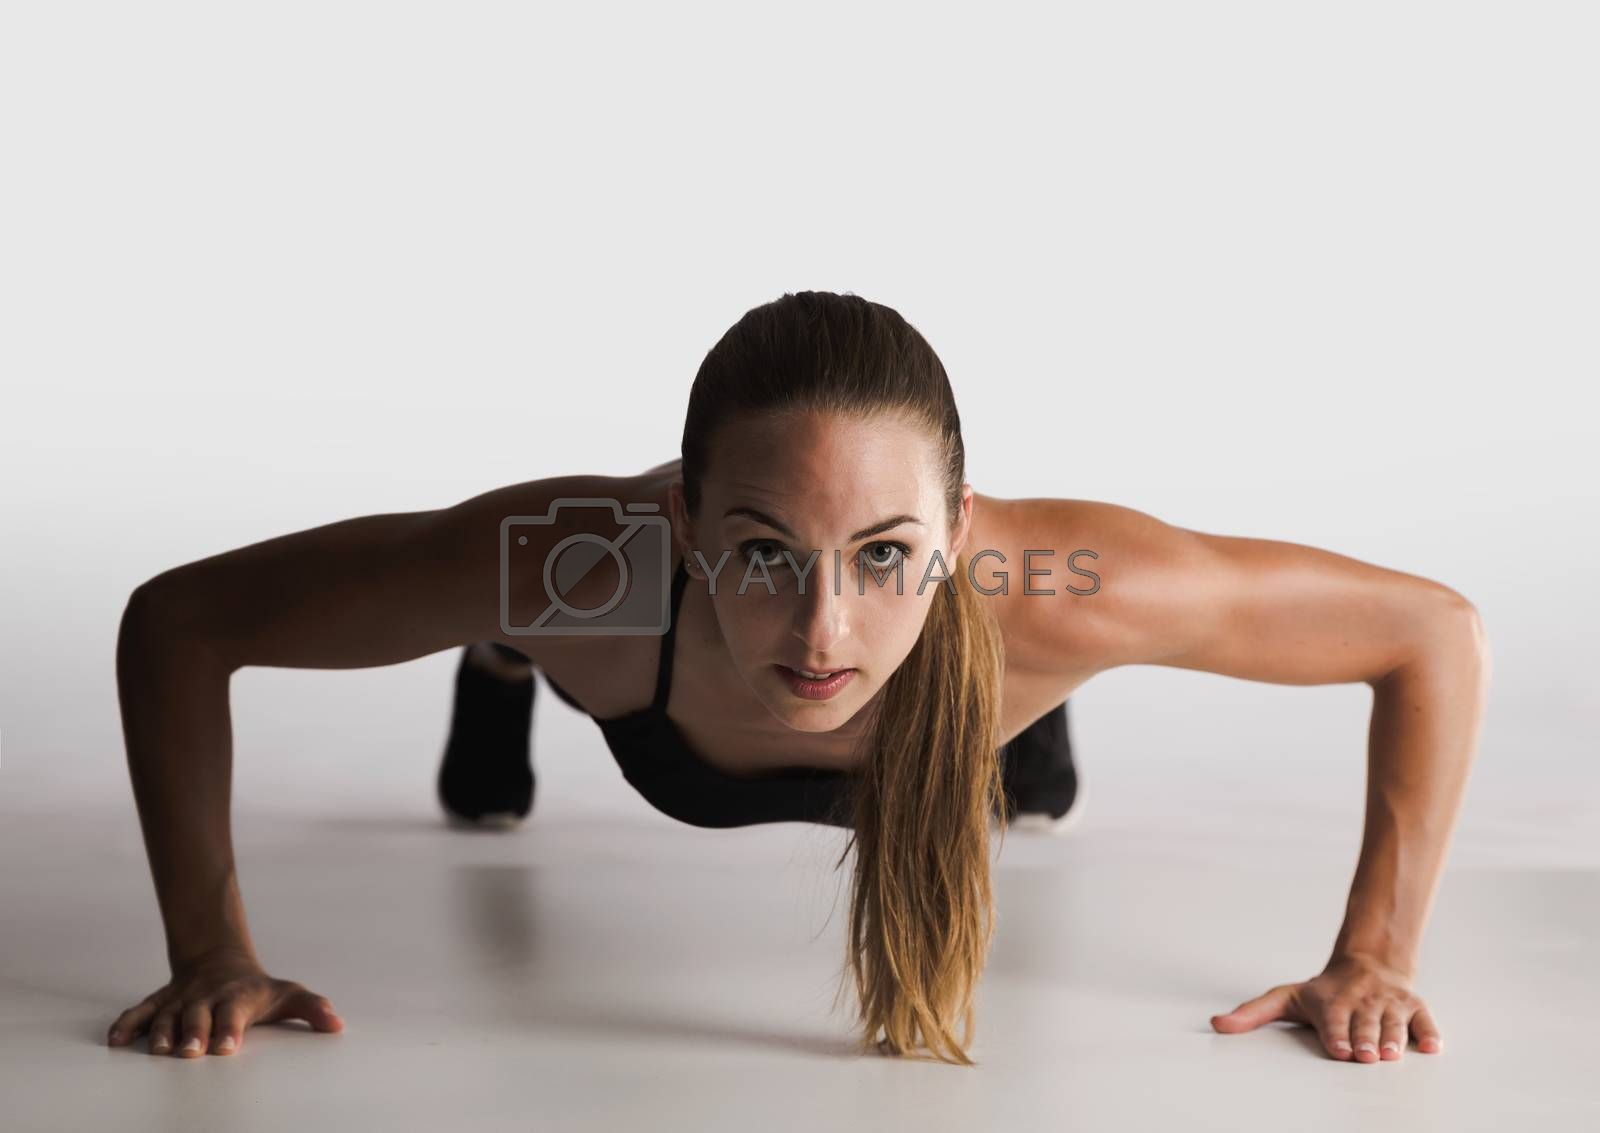 Royalty free image of Push-up Challenge by Iko